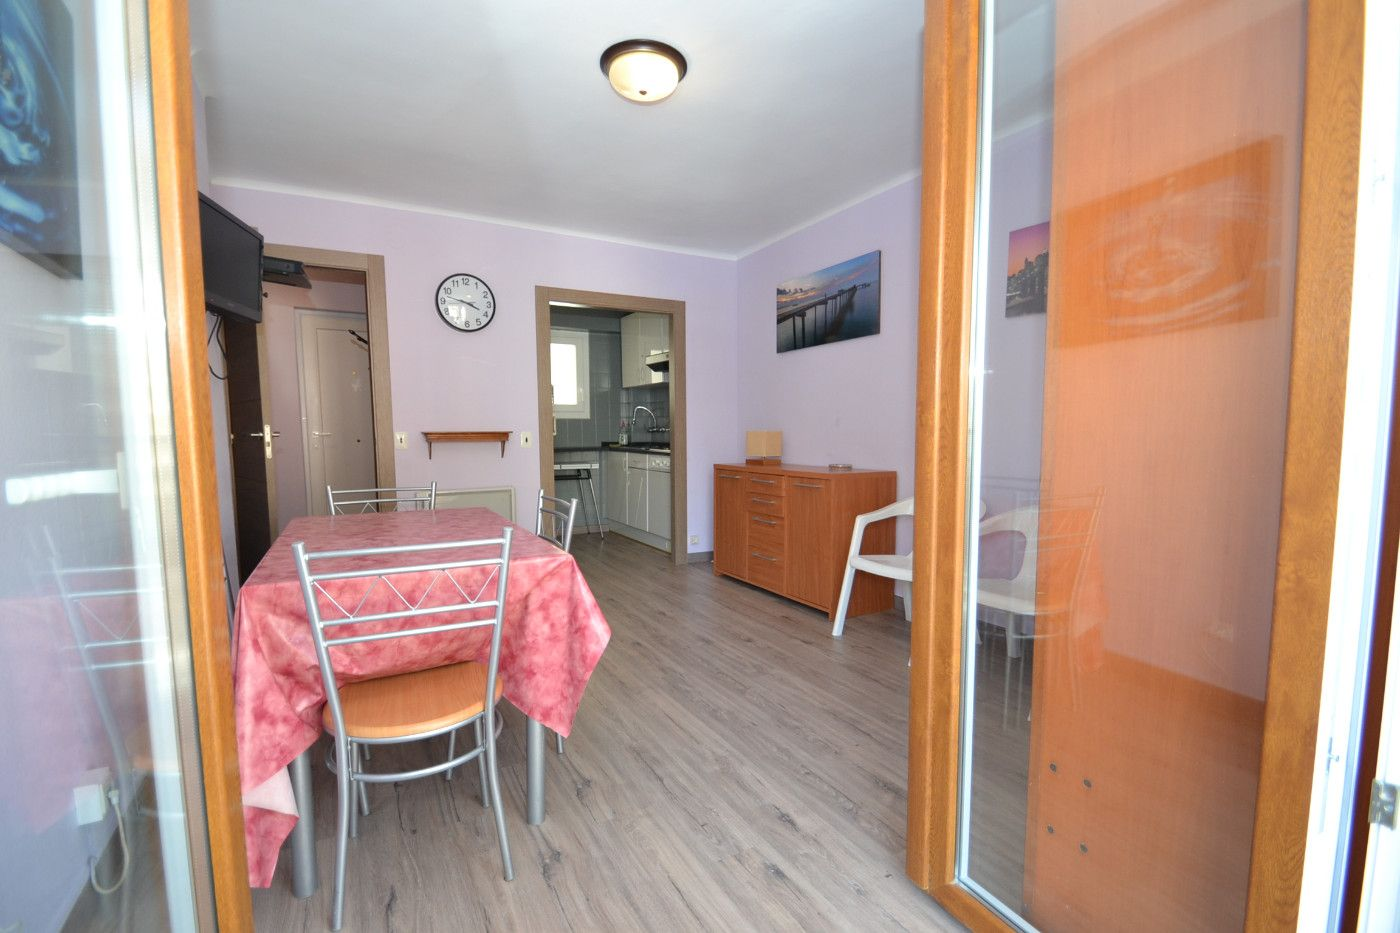 Miete Appartement in Carrer falset (de), 24. Directo proprietario hasta mayo